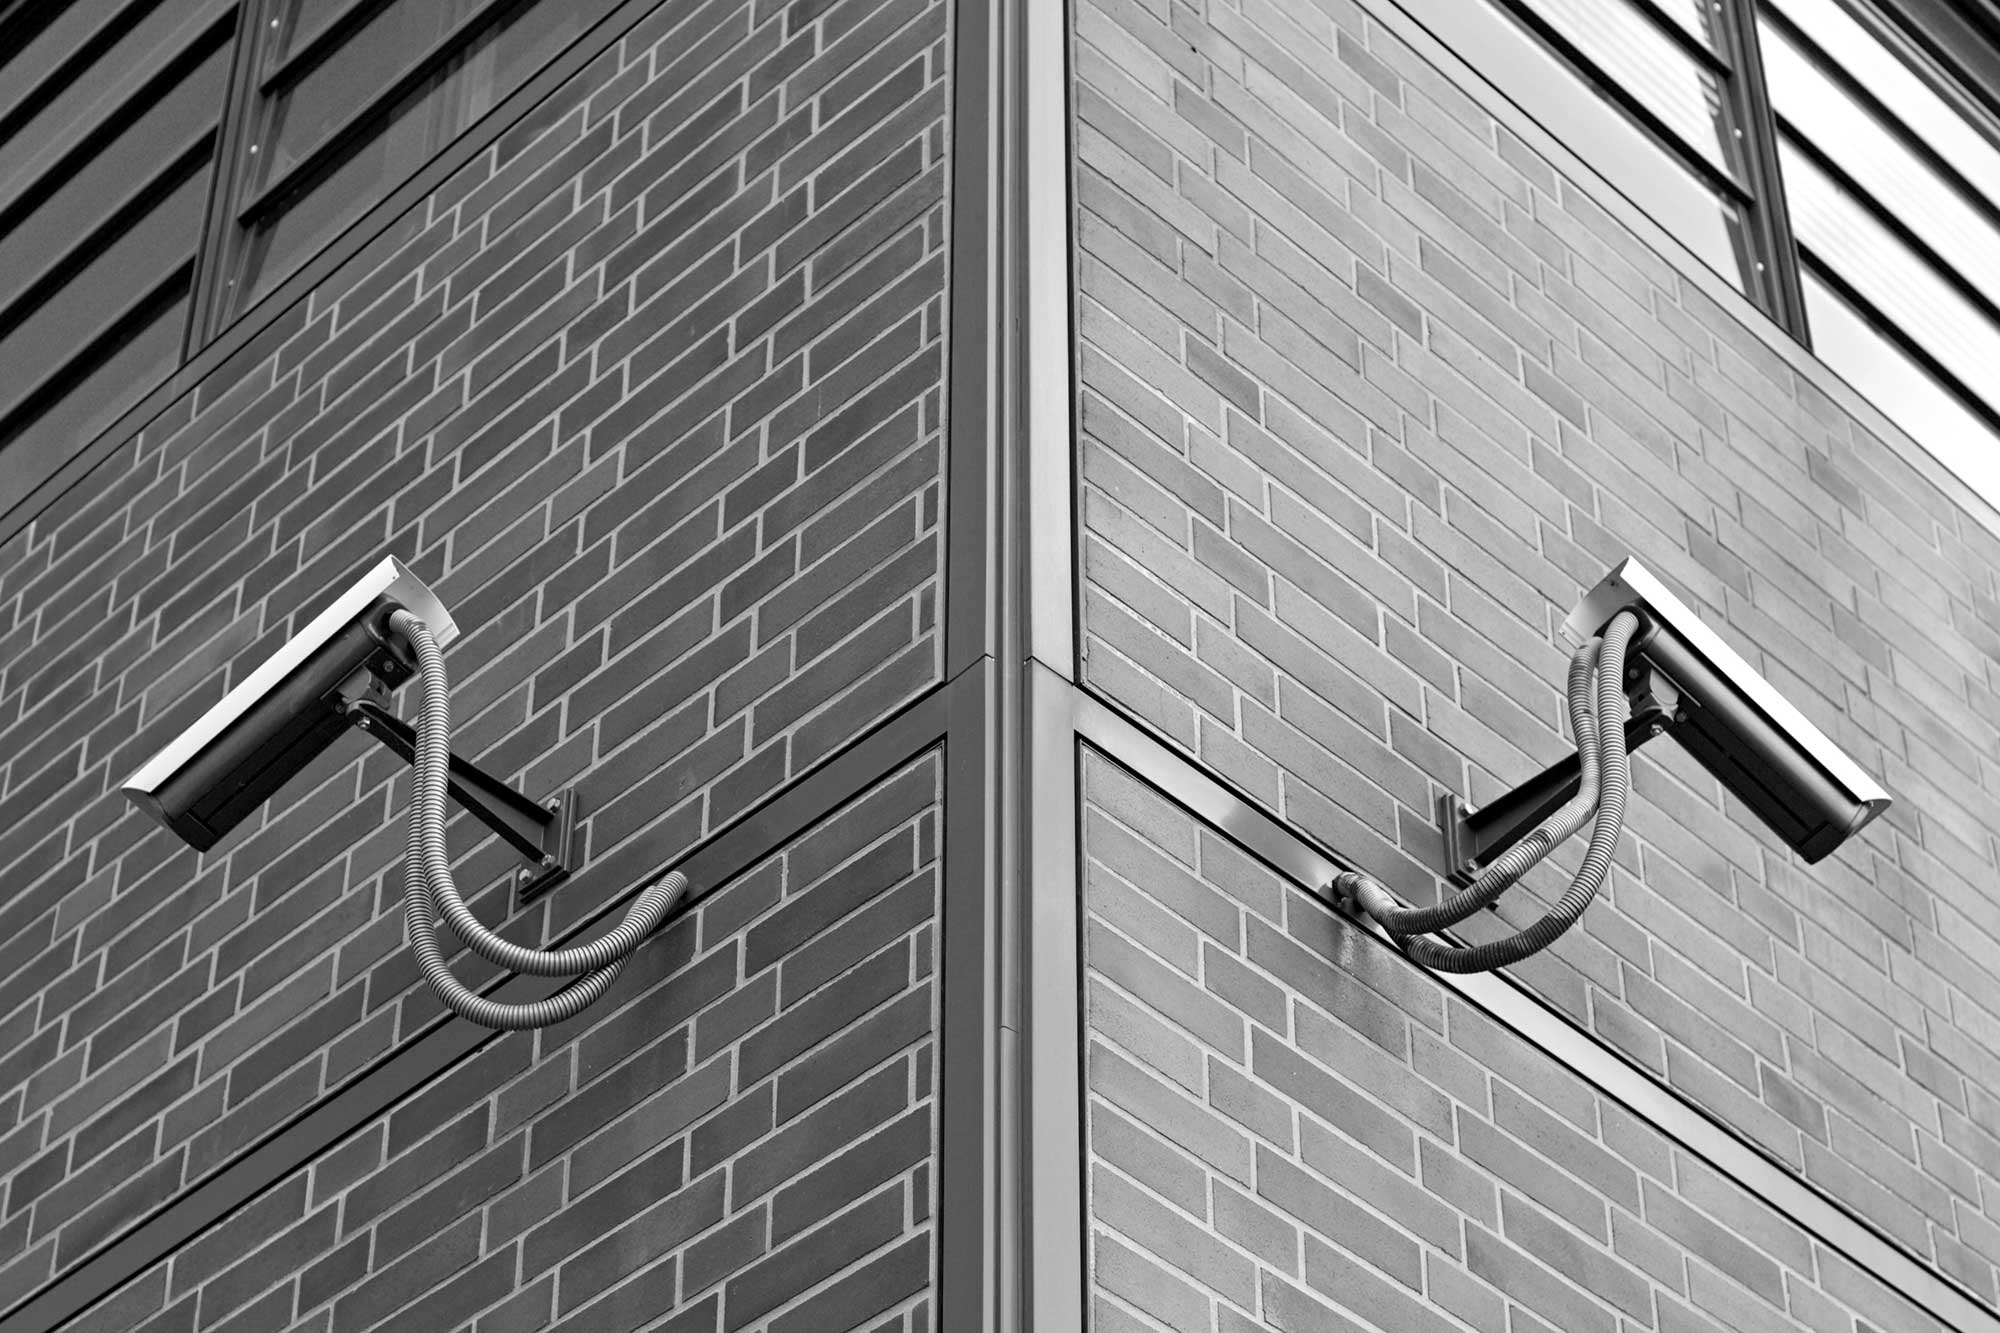 Symmetric Security Cameras in Albuquerque, NM